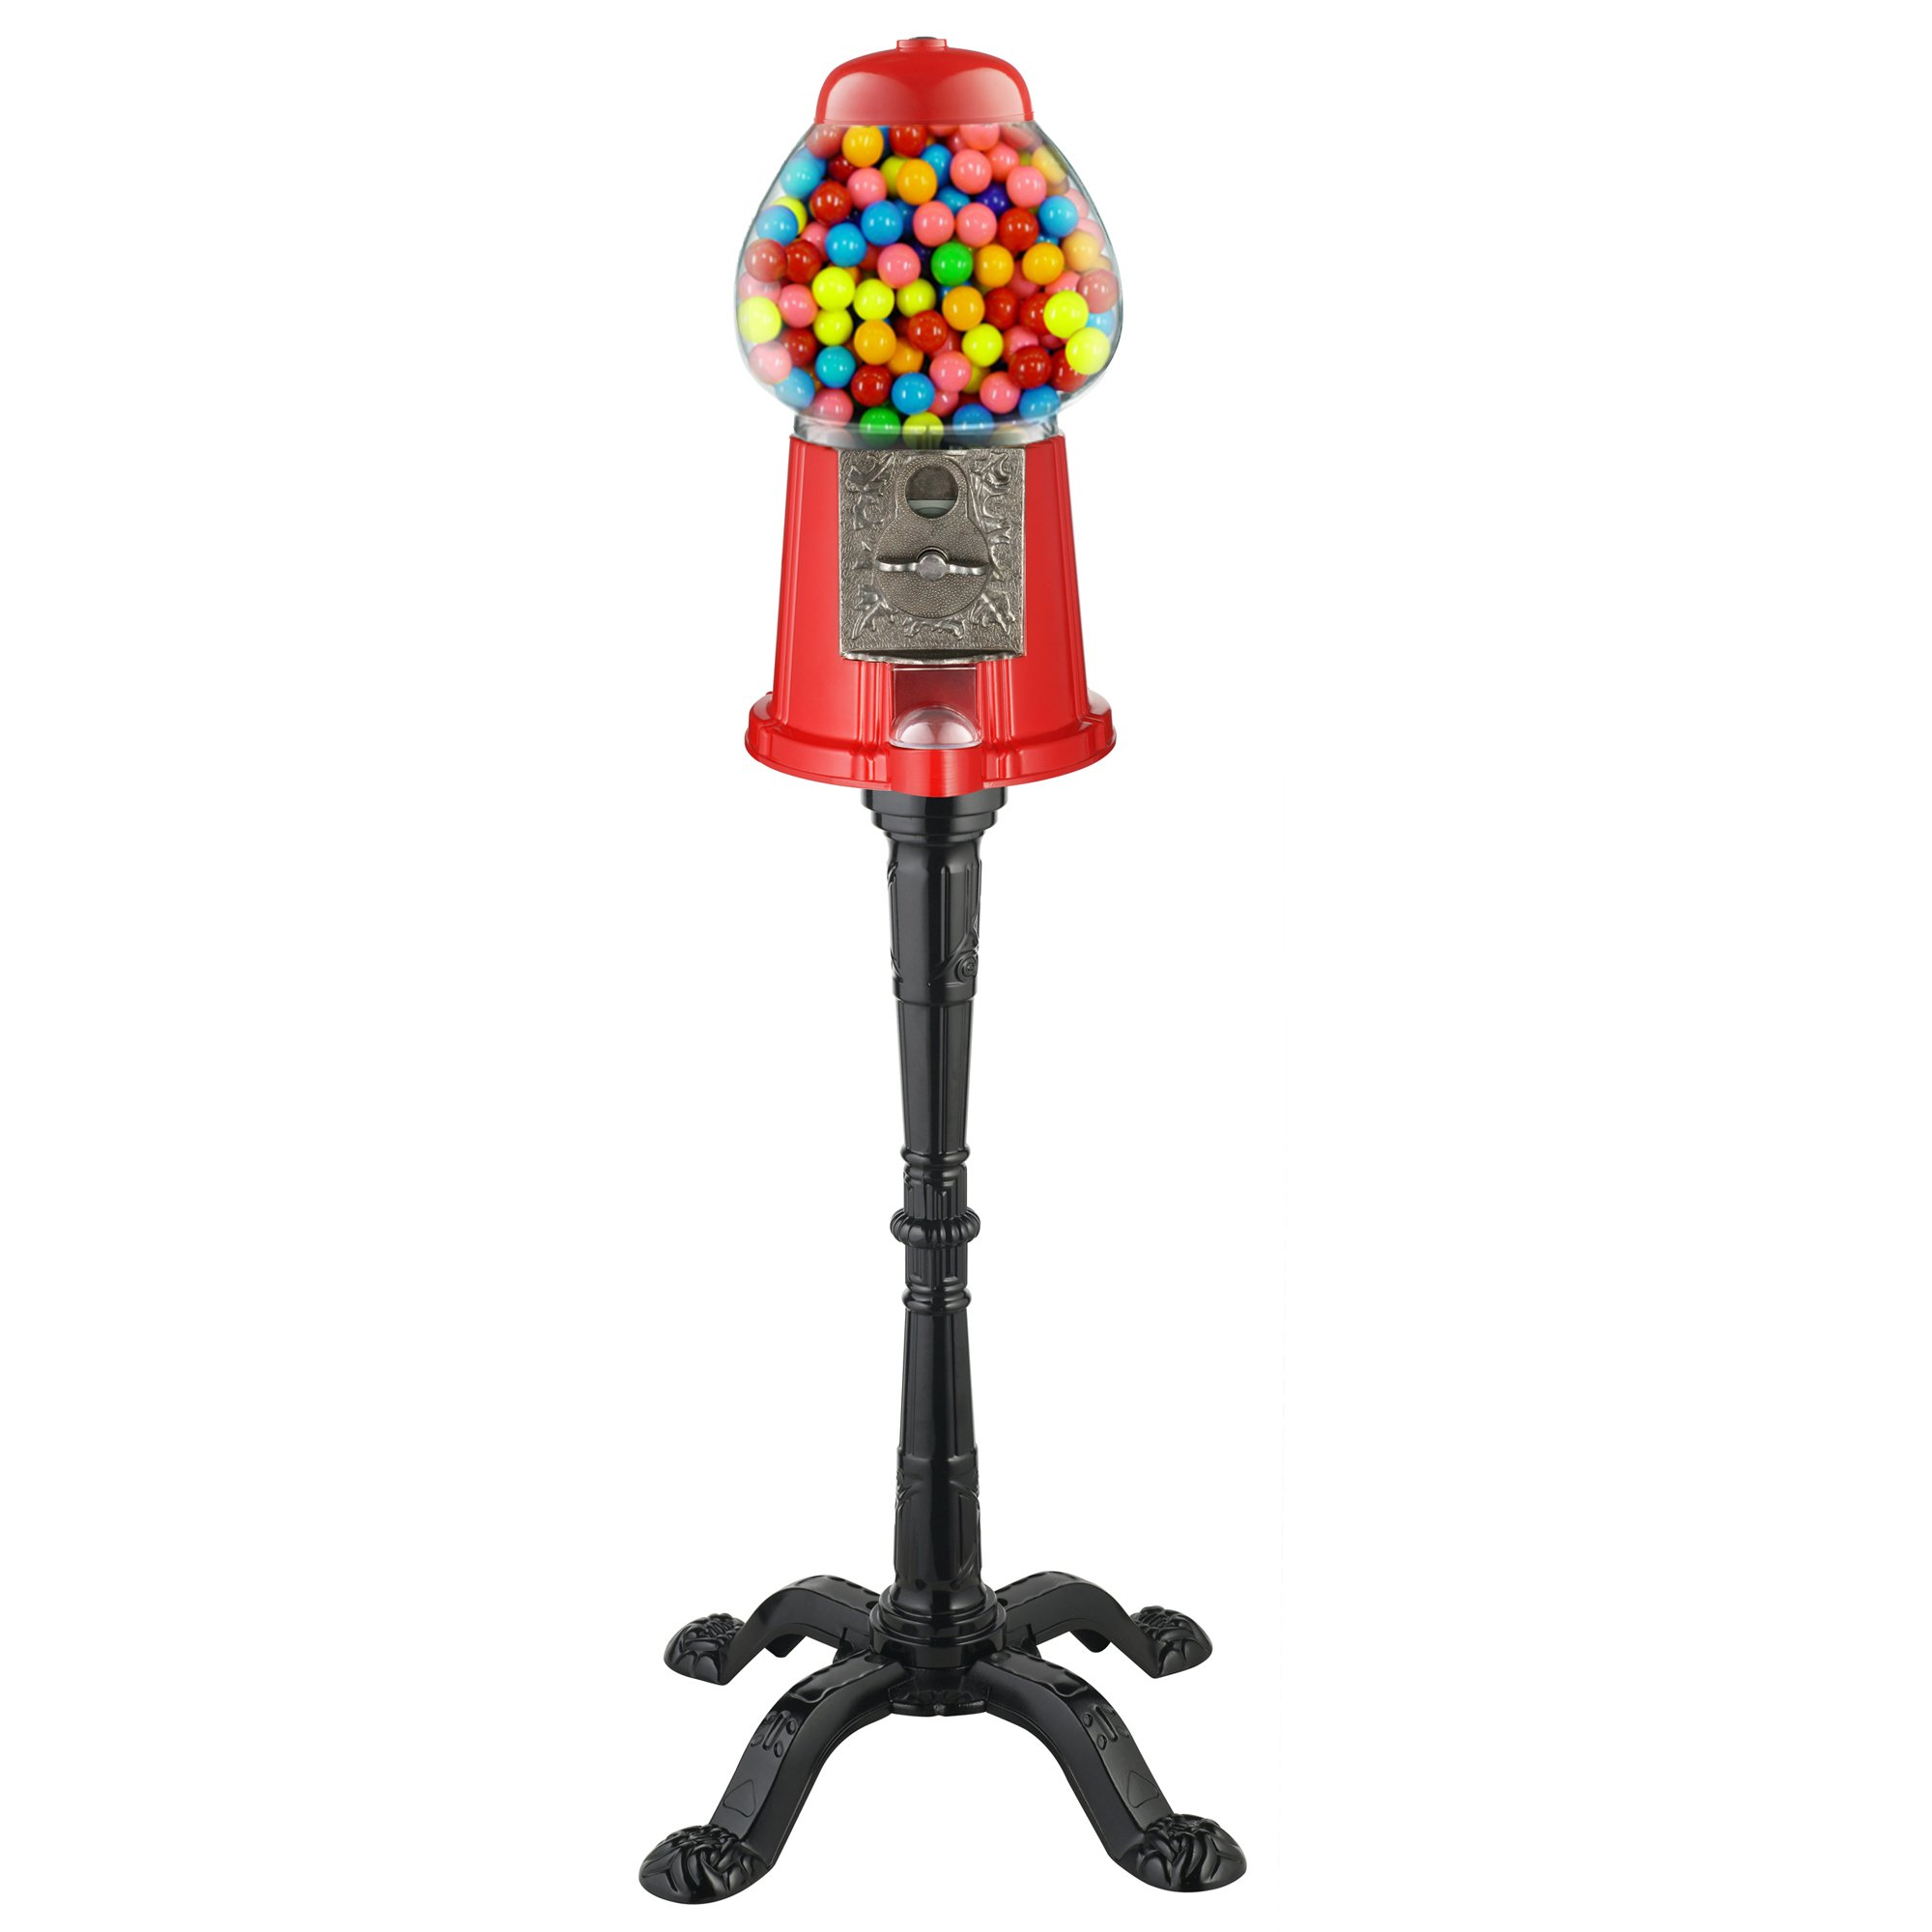 antique gumball machine on stand